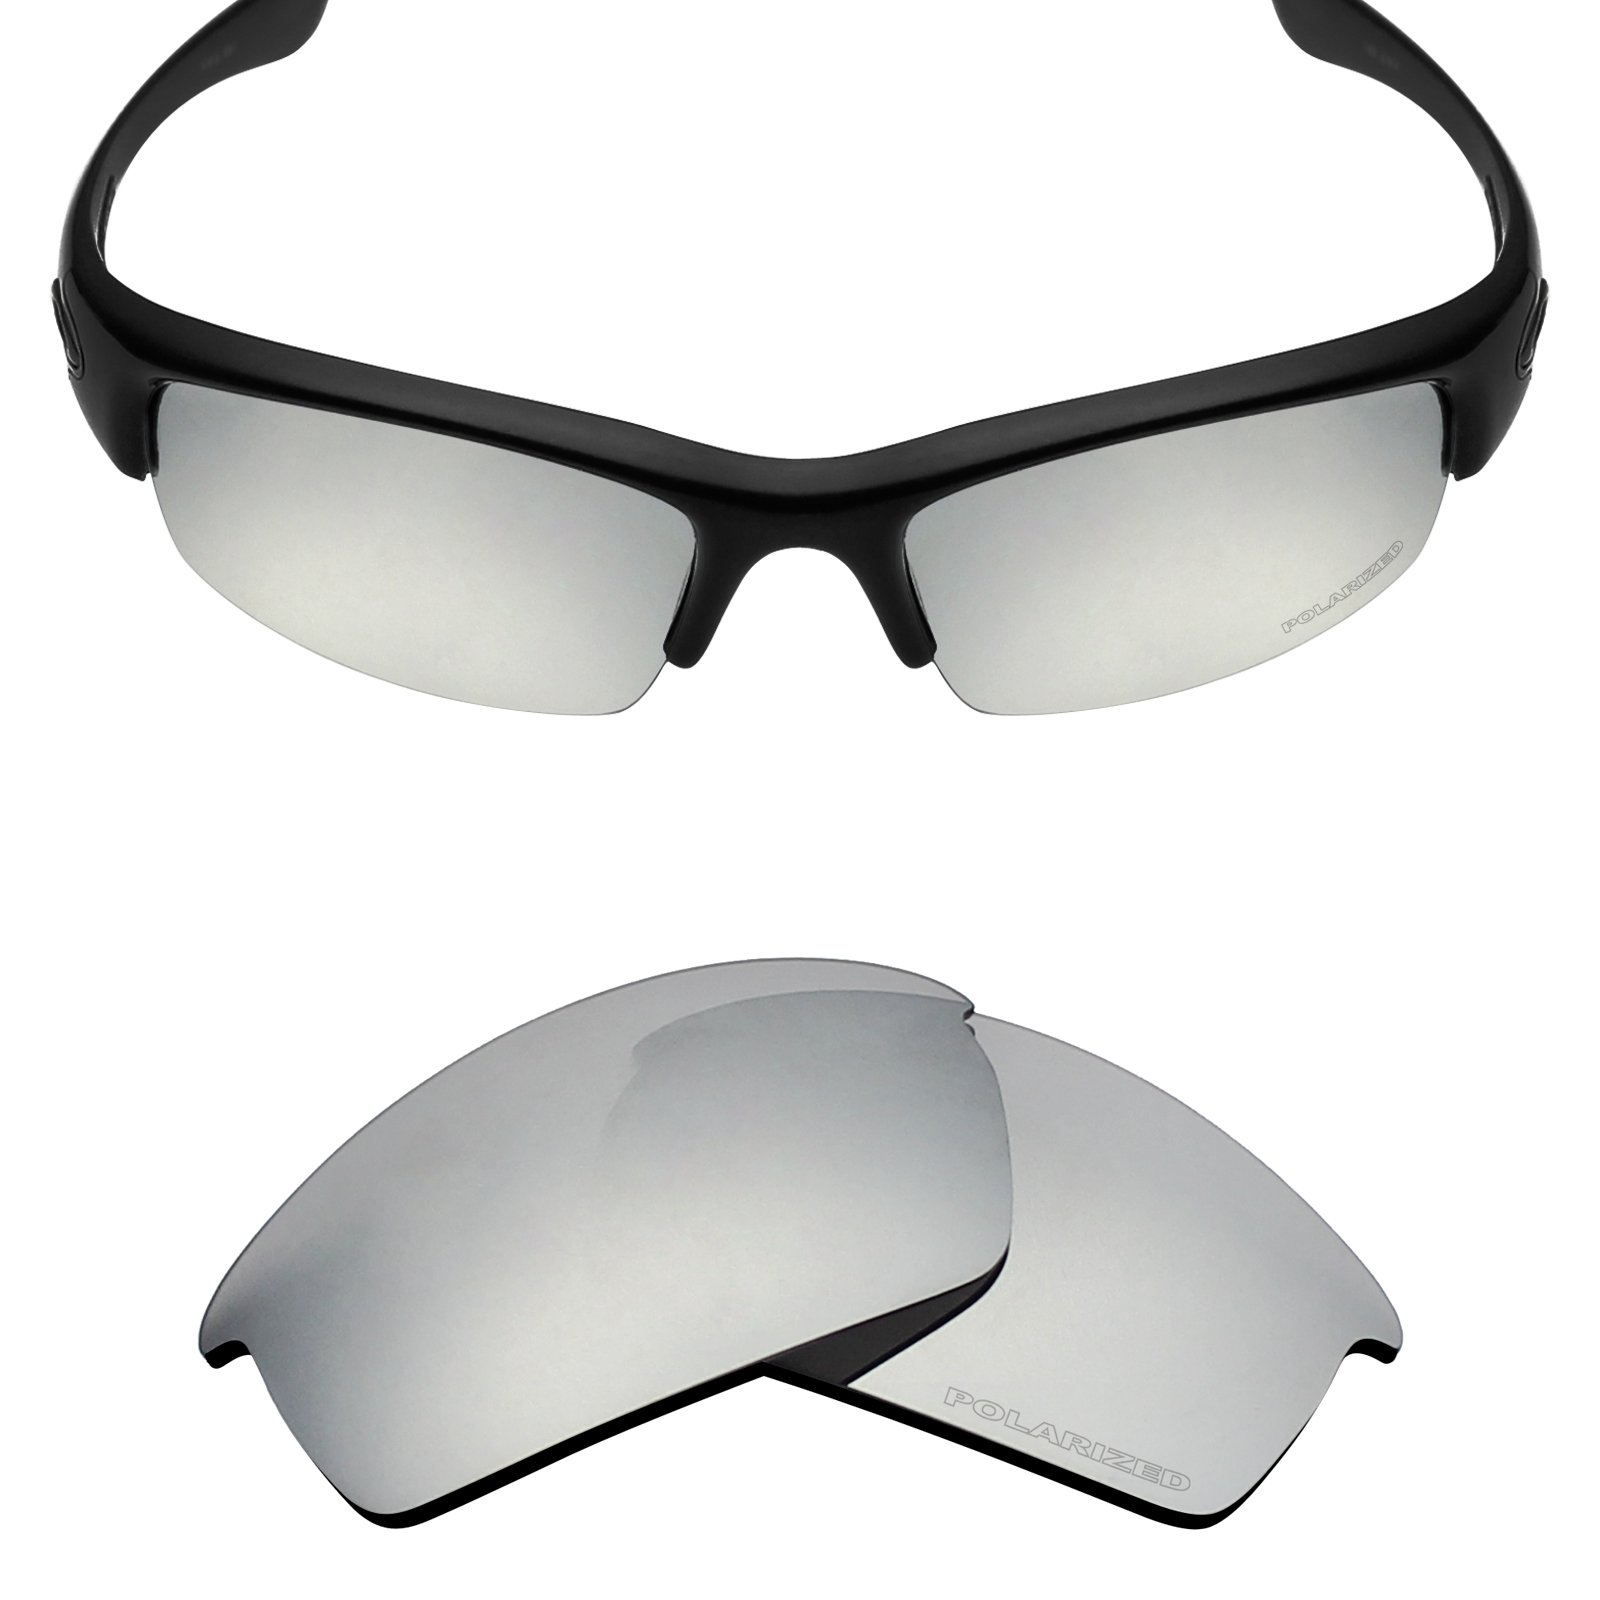 Mryok+ Polarized Replacement Lenses for Oakley Bottlecap - Silver Titanium by Mryok